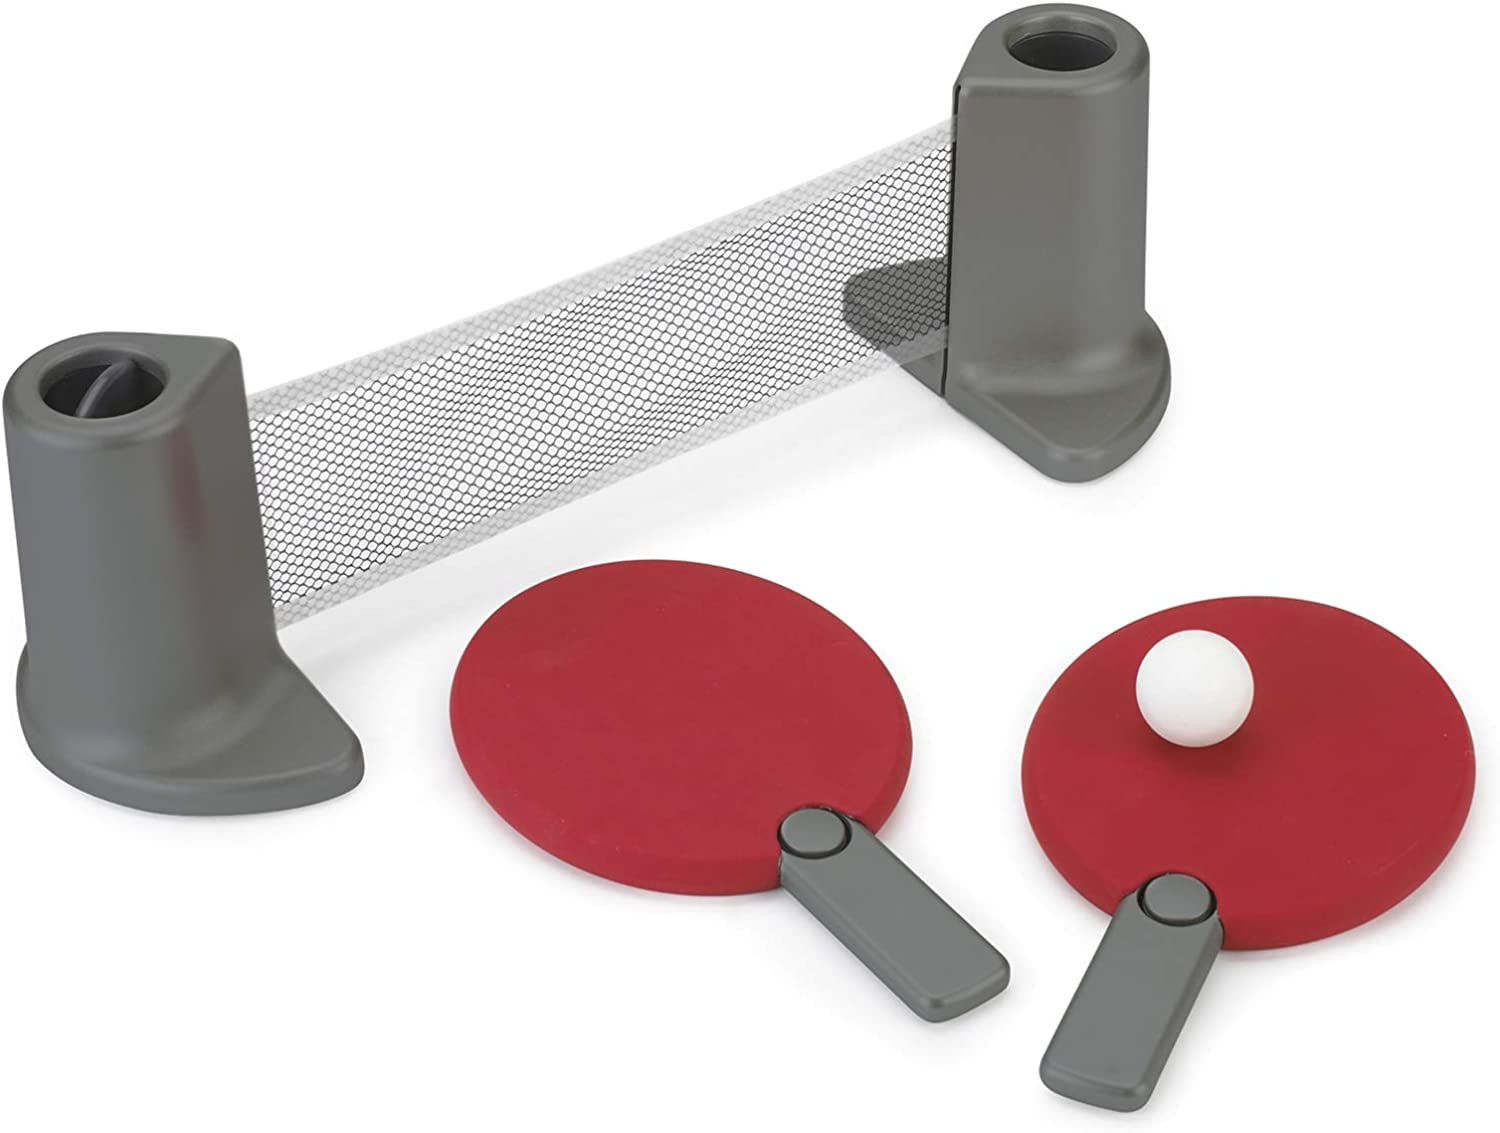 Pongo Table Tennis Set Red/Charcoal: Toys & Games